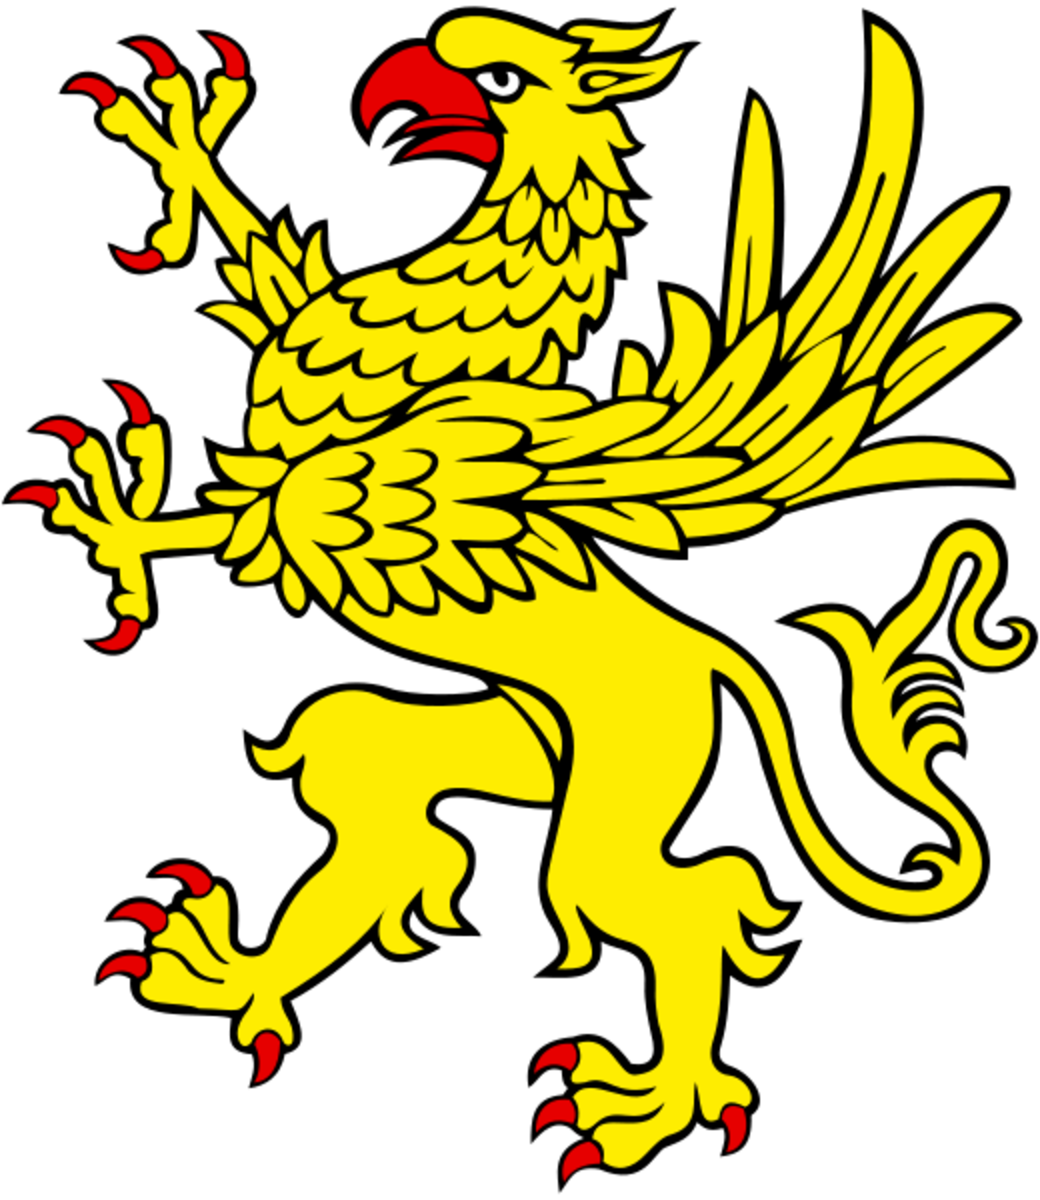 The Griffon d'Or, the golden griffon, is a symbol in medieval French heraldry.